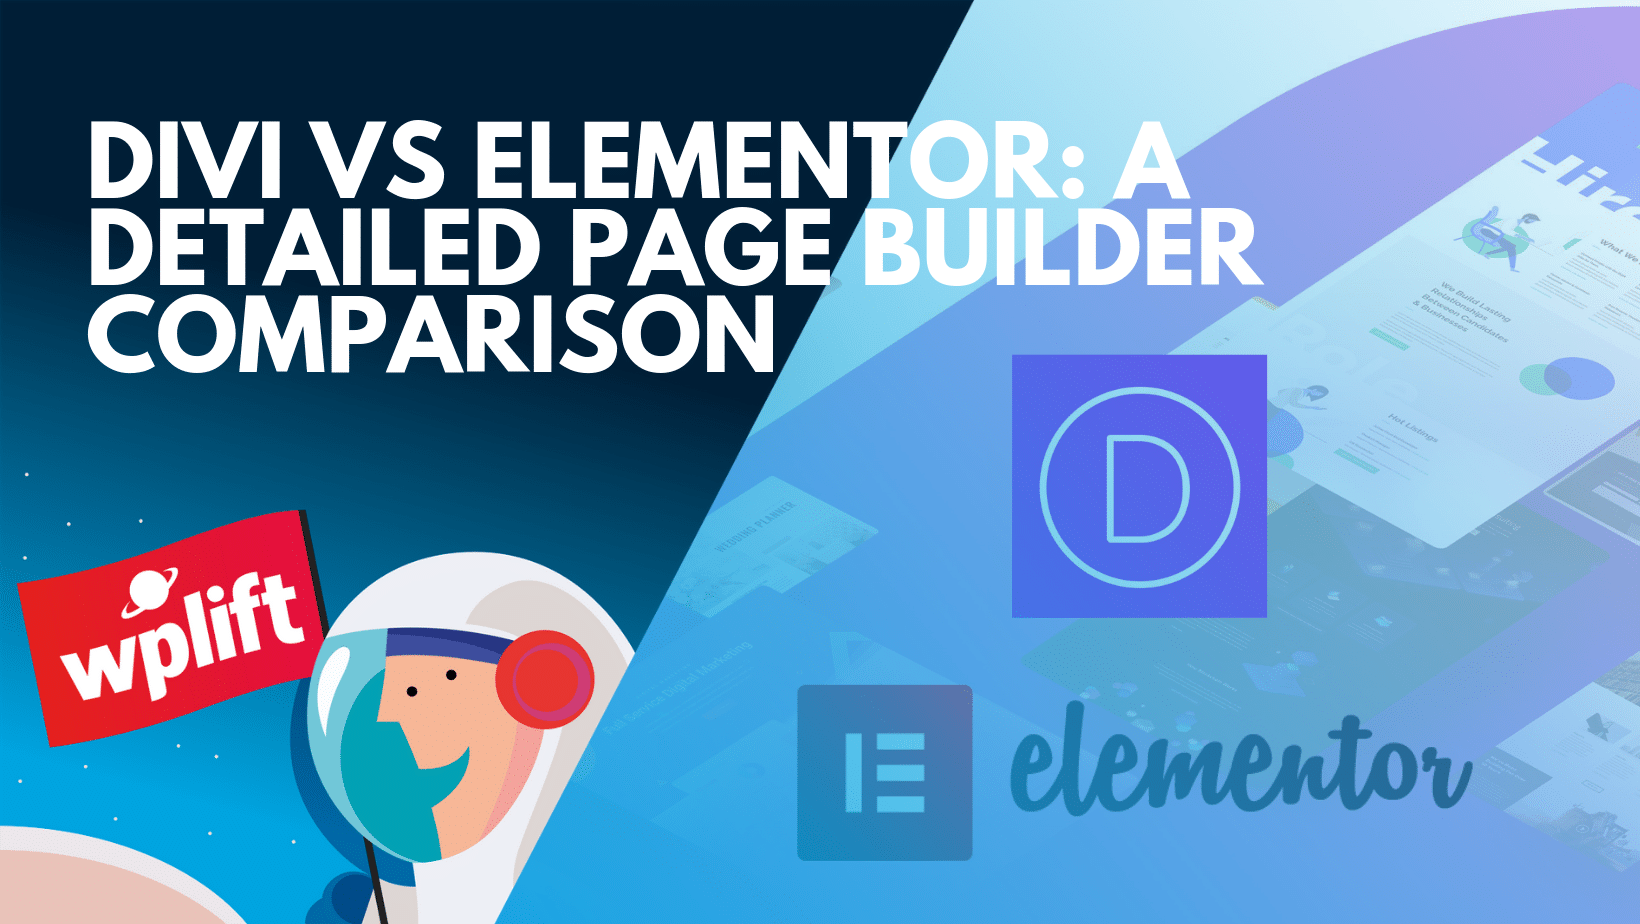 A Detailed Page Builder Comparison